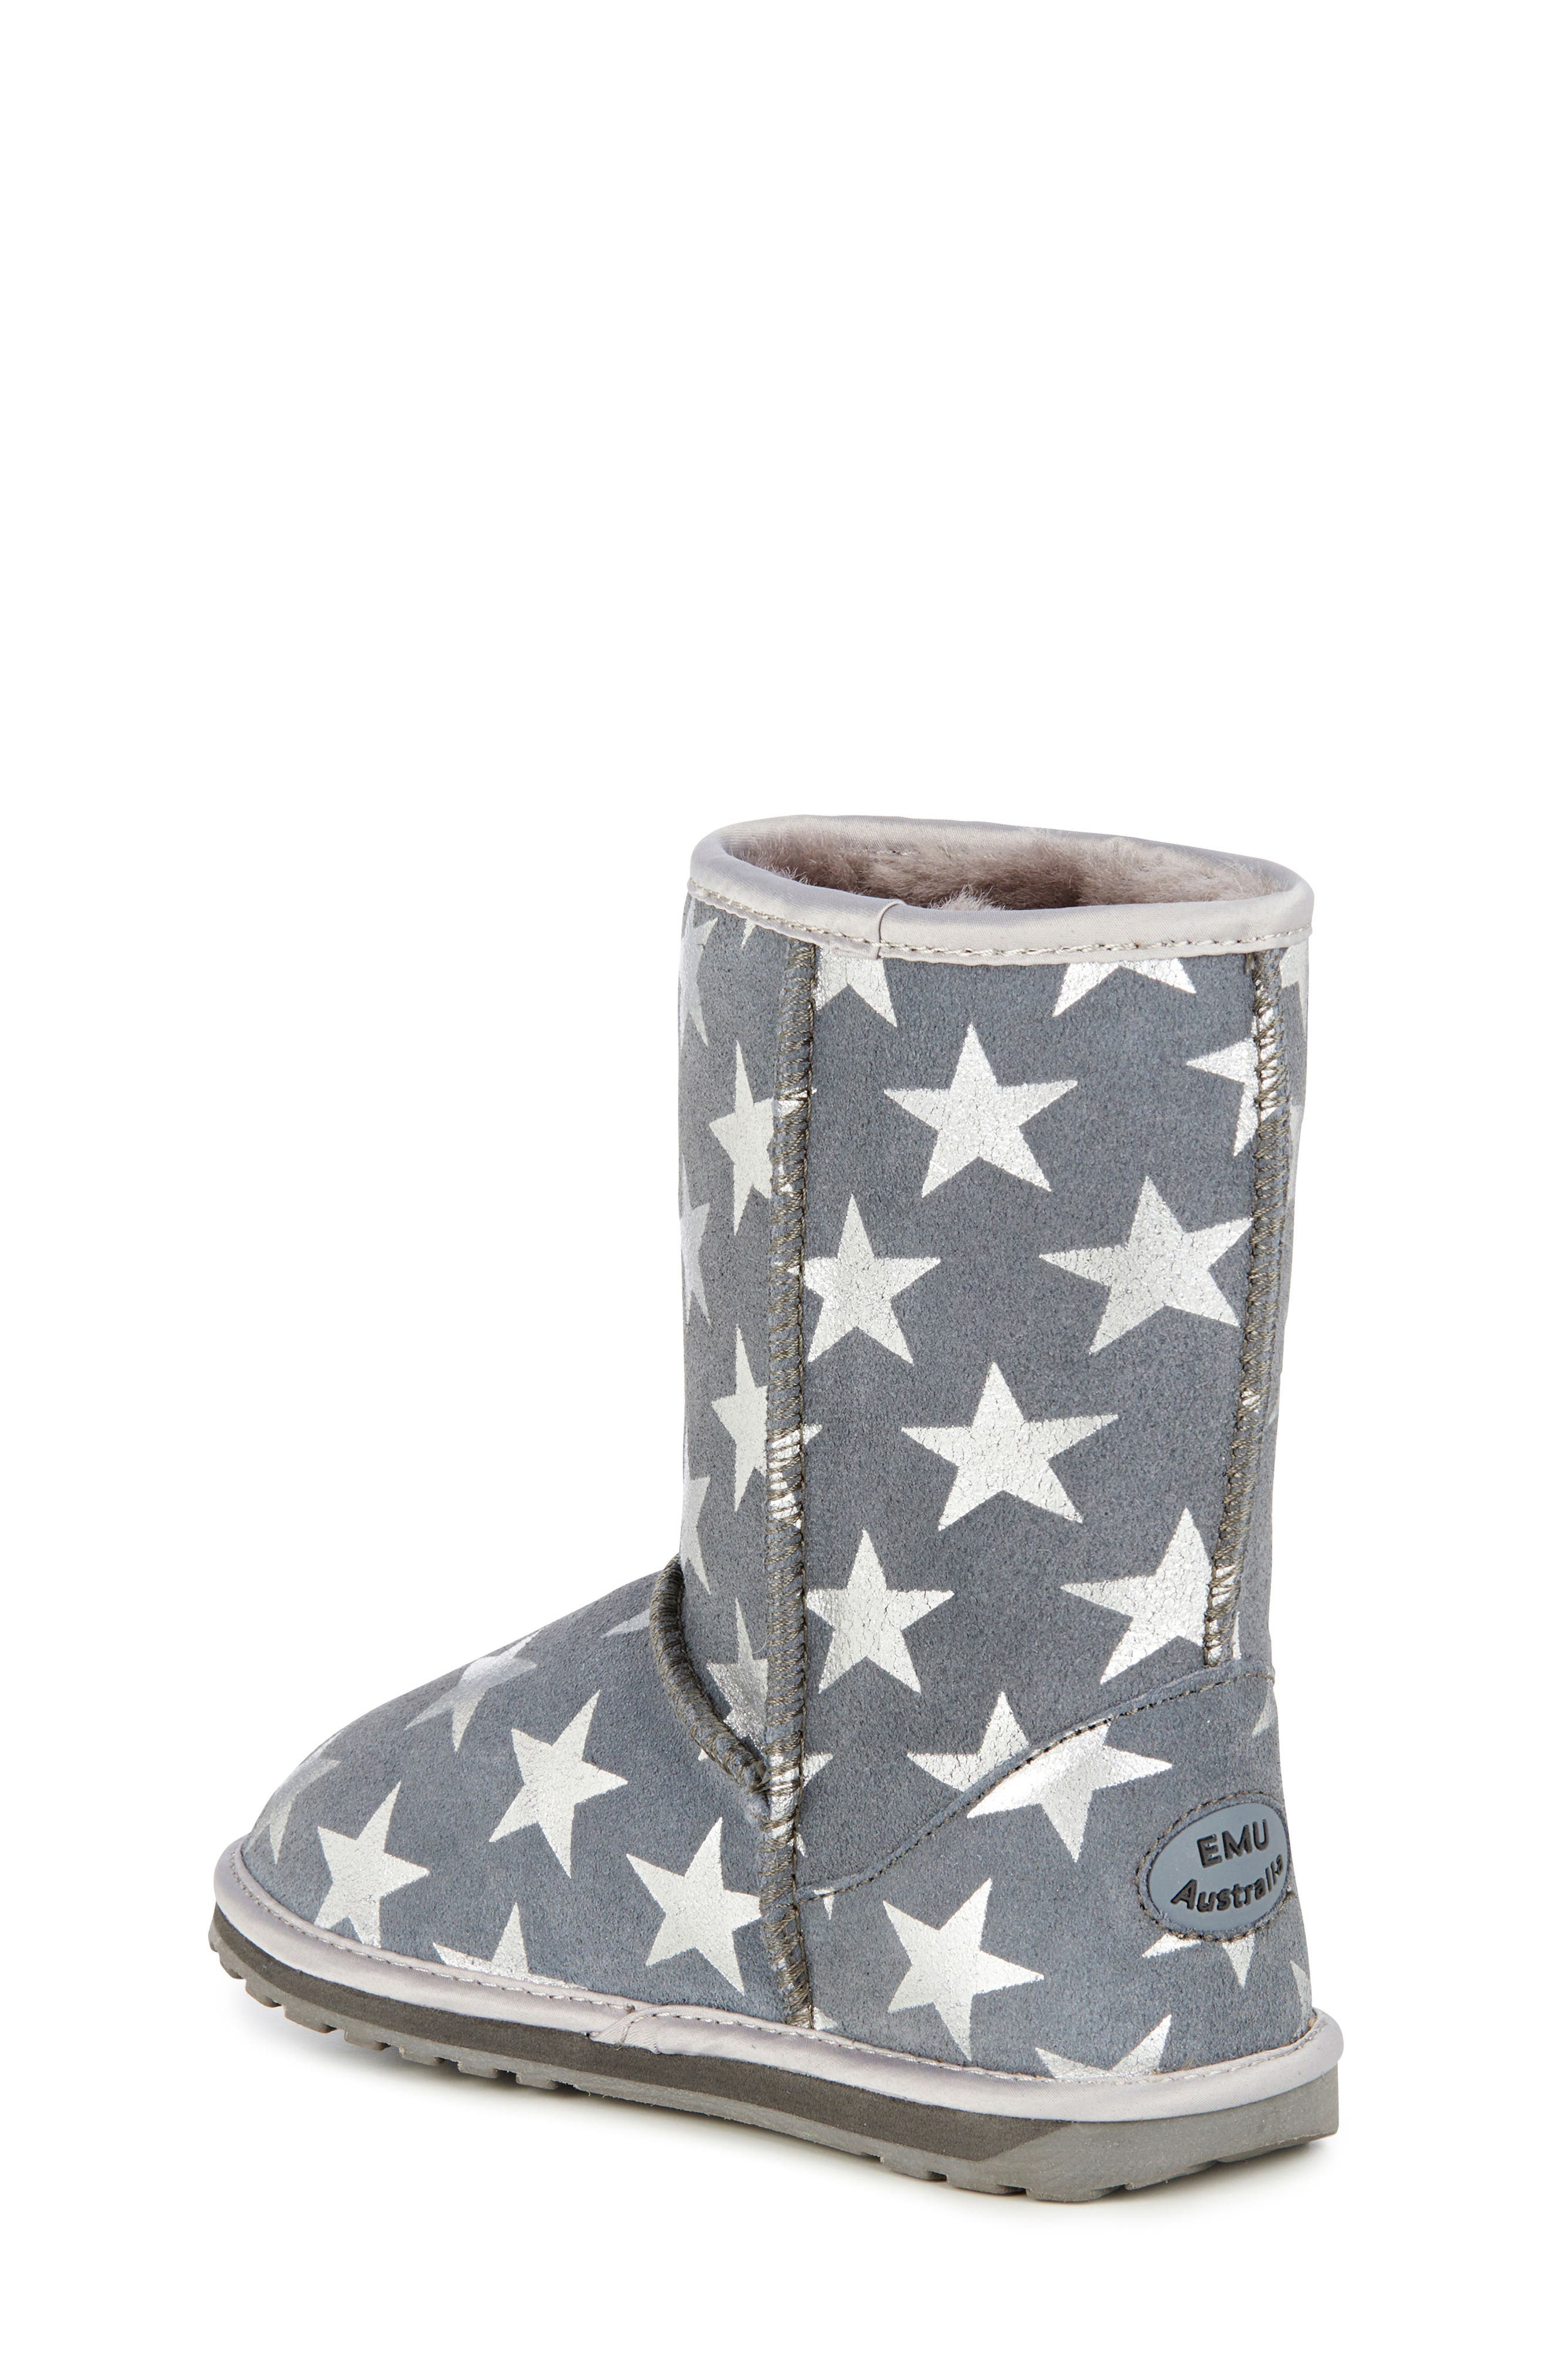 EMUAustralia Starry Night Boot,                             Alternate thumbnail 2, color,                             CHARCOAL